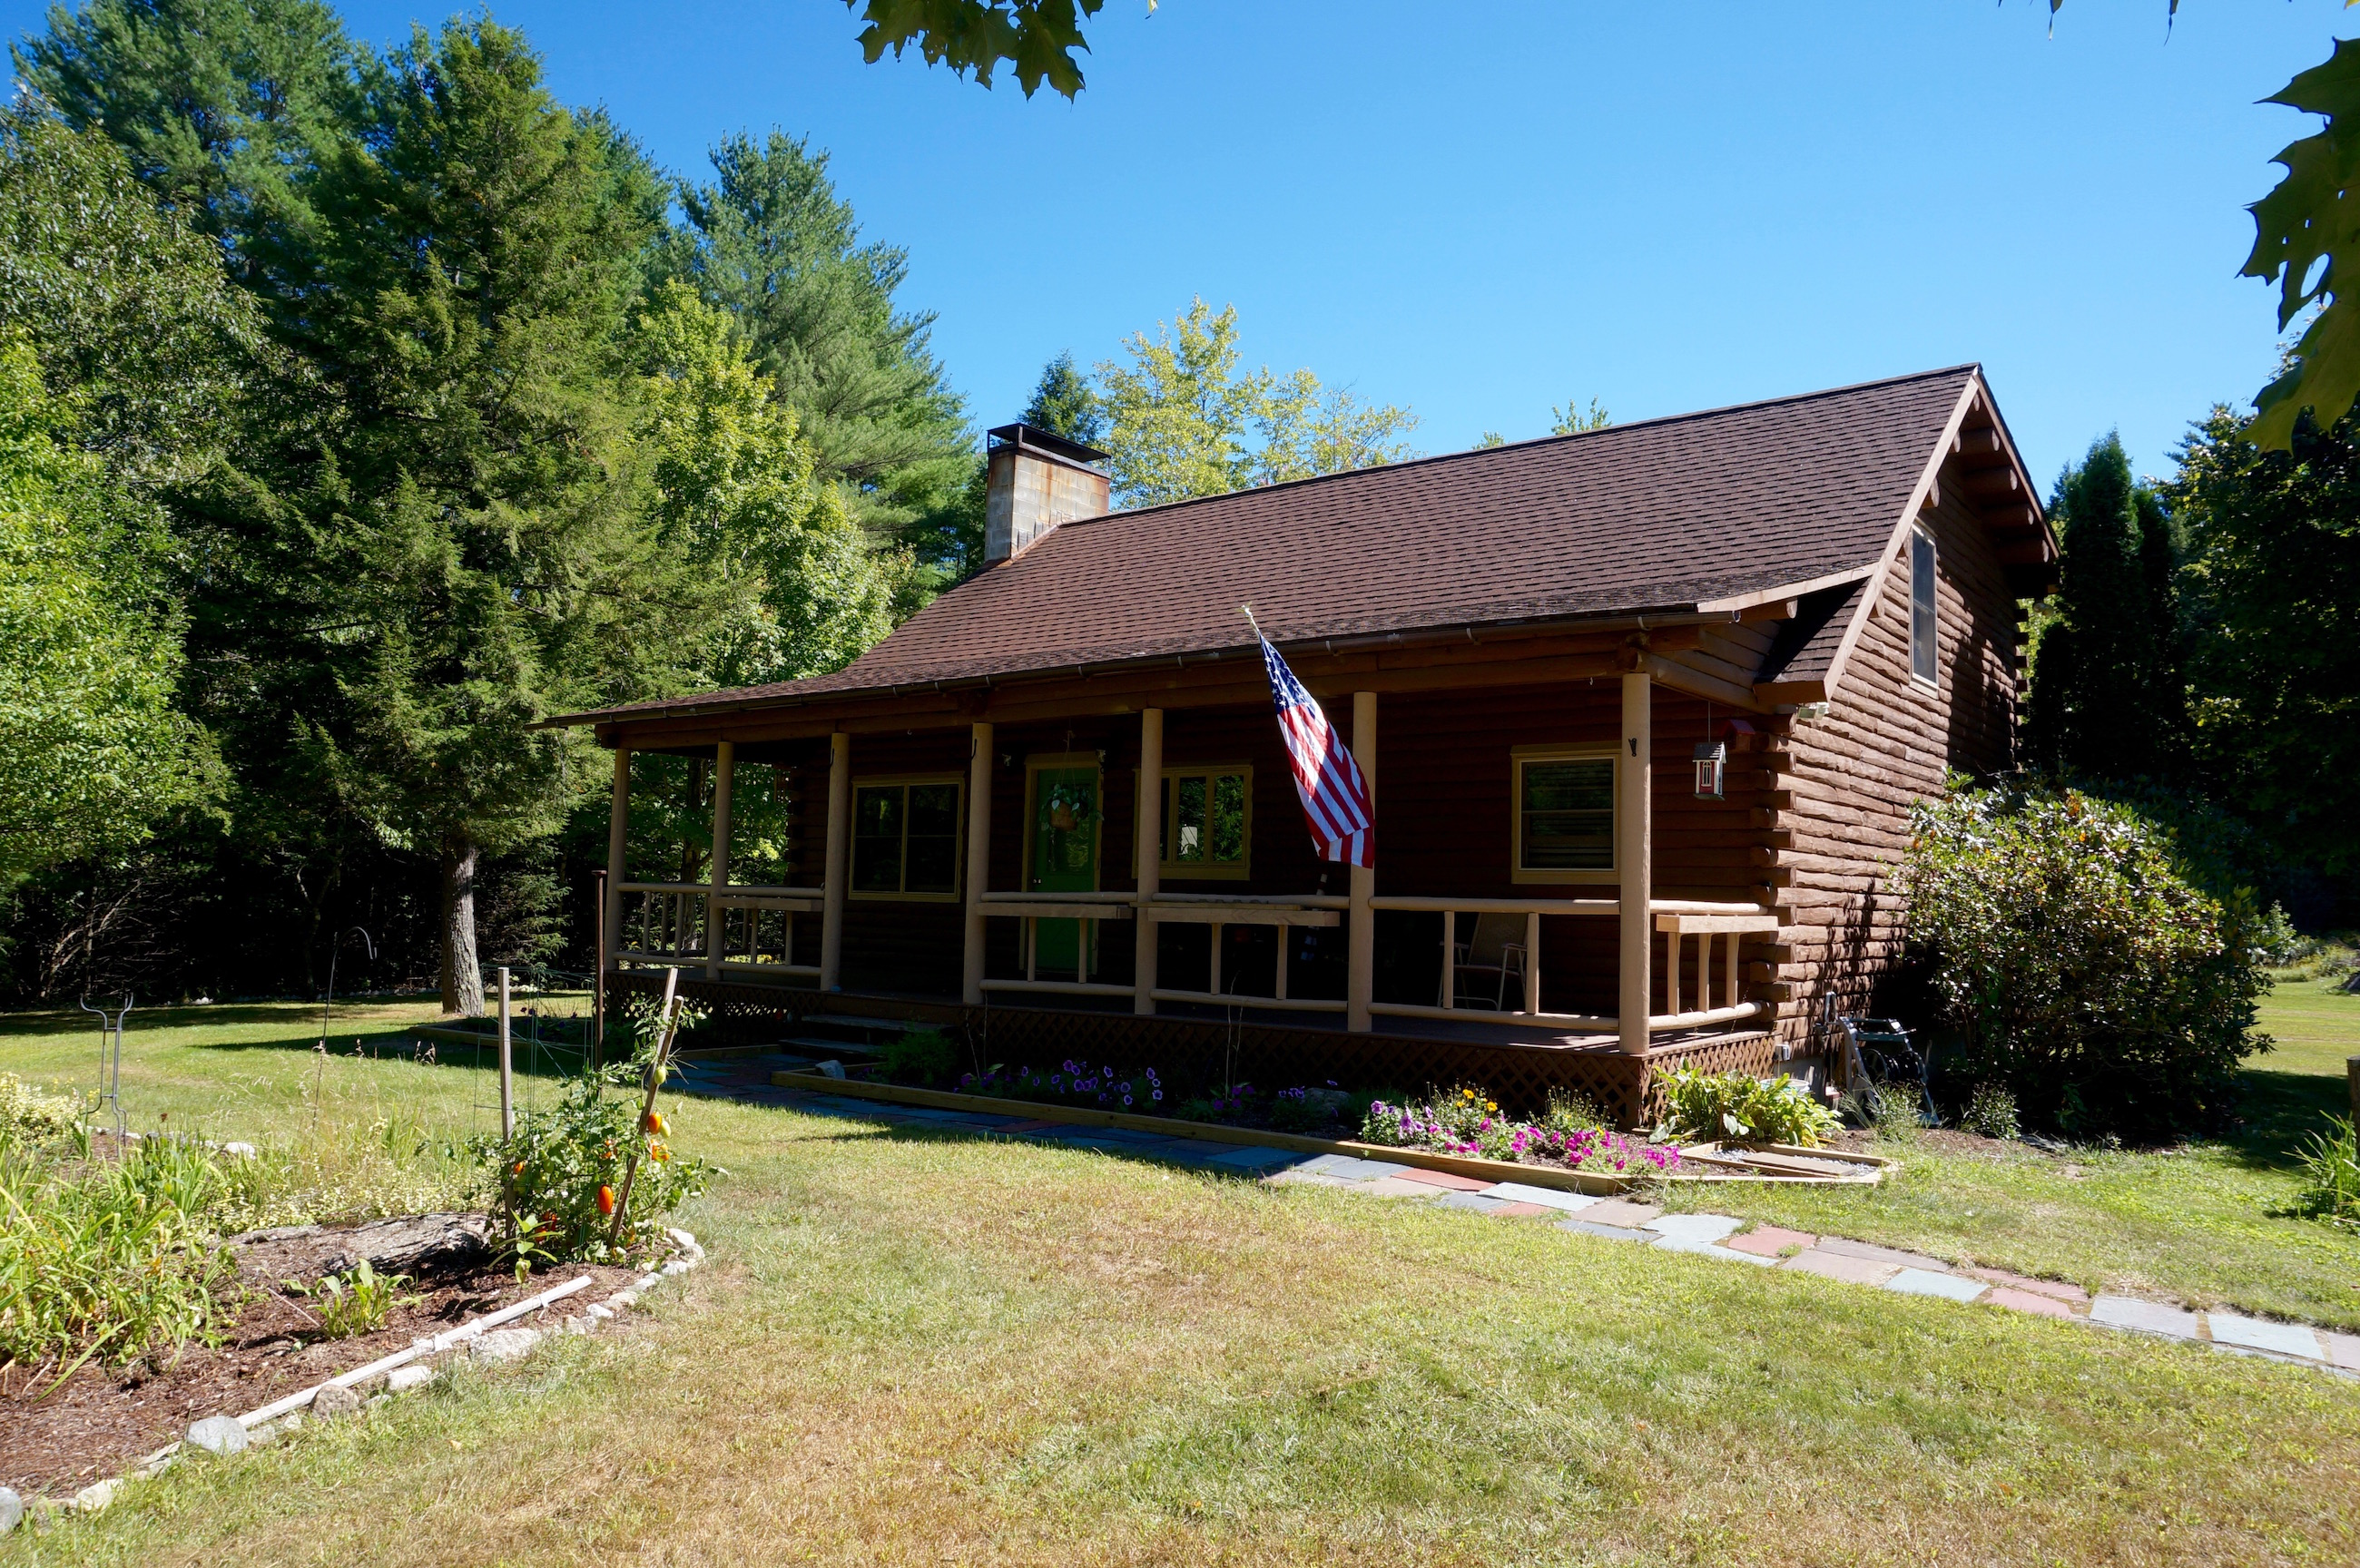 Single Family Home for Sale at 44 Southgate Rd, Newbury Newbury, New Hampshire, 03255 United States